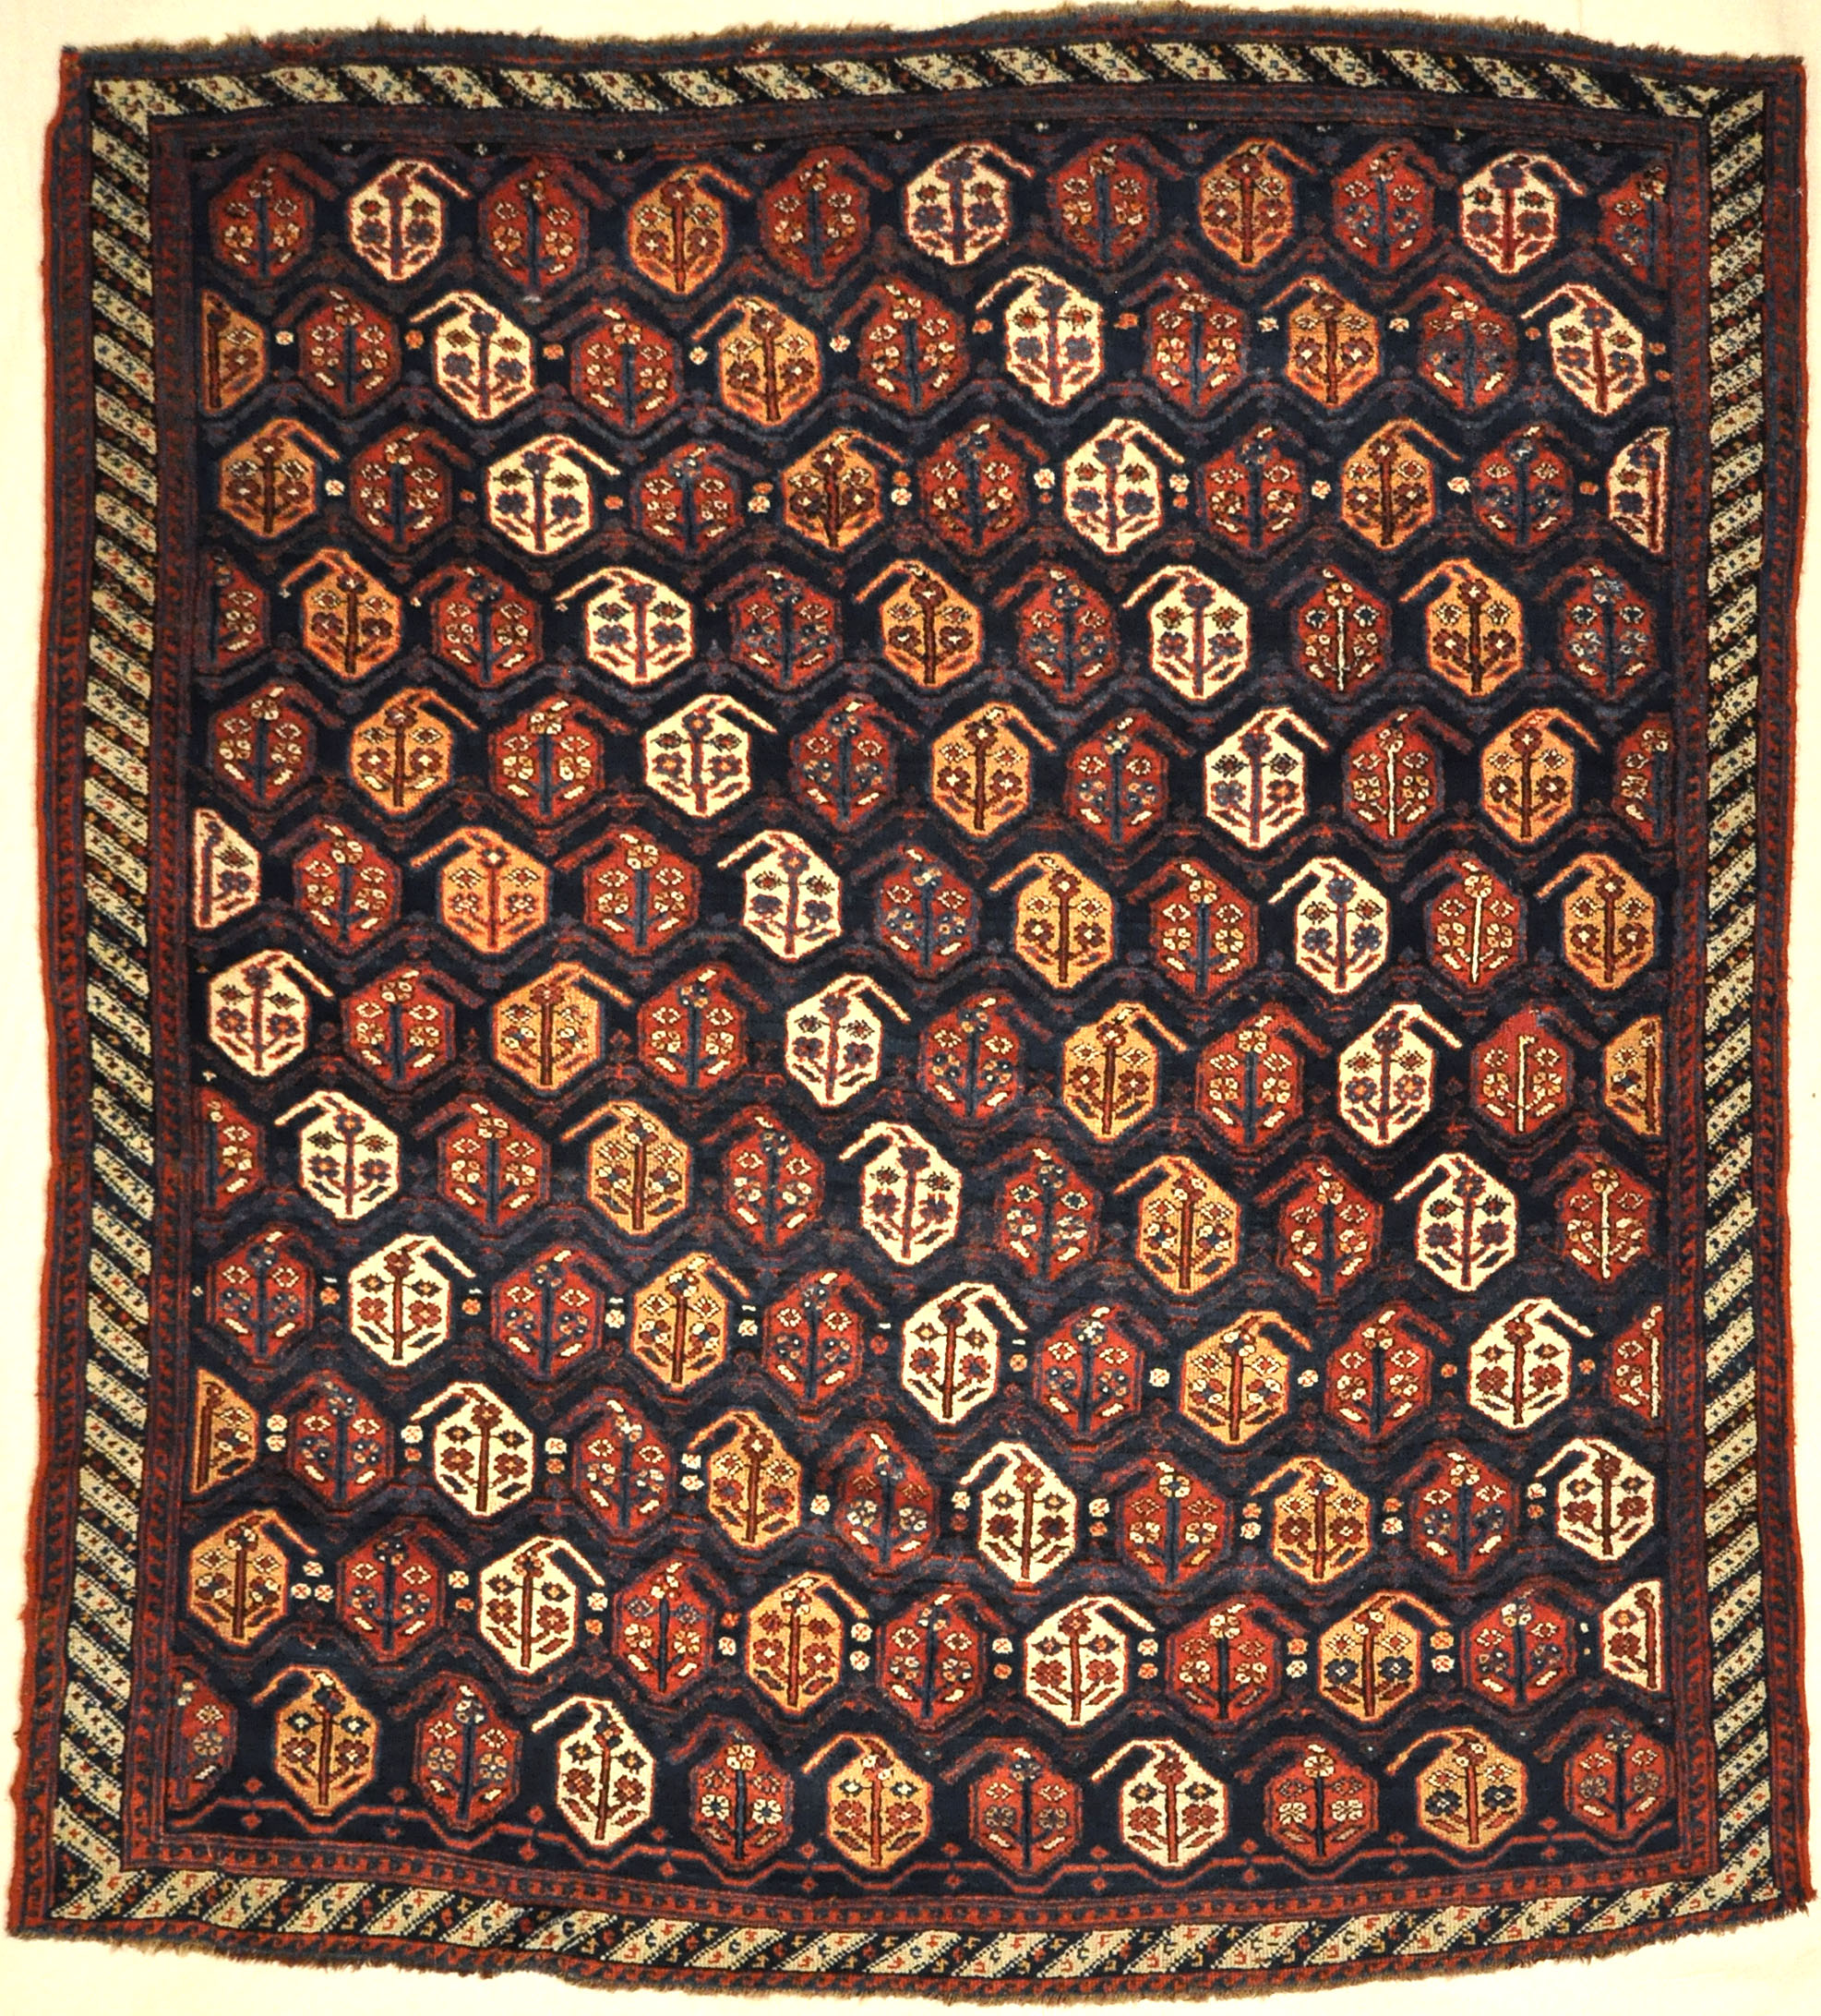 Rare 1870s Antique Boteh Afshar. A piece of authentic genuine antique woven carpet art sold by Santa Barbara Design Center, Rugs and More.